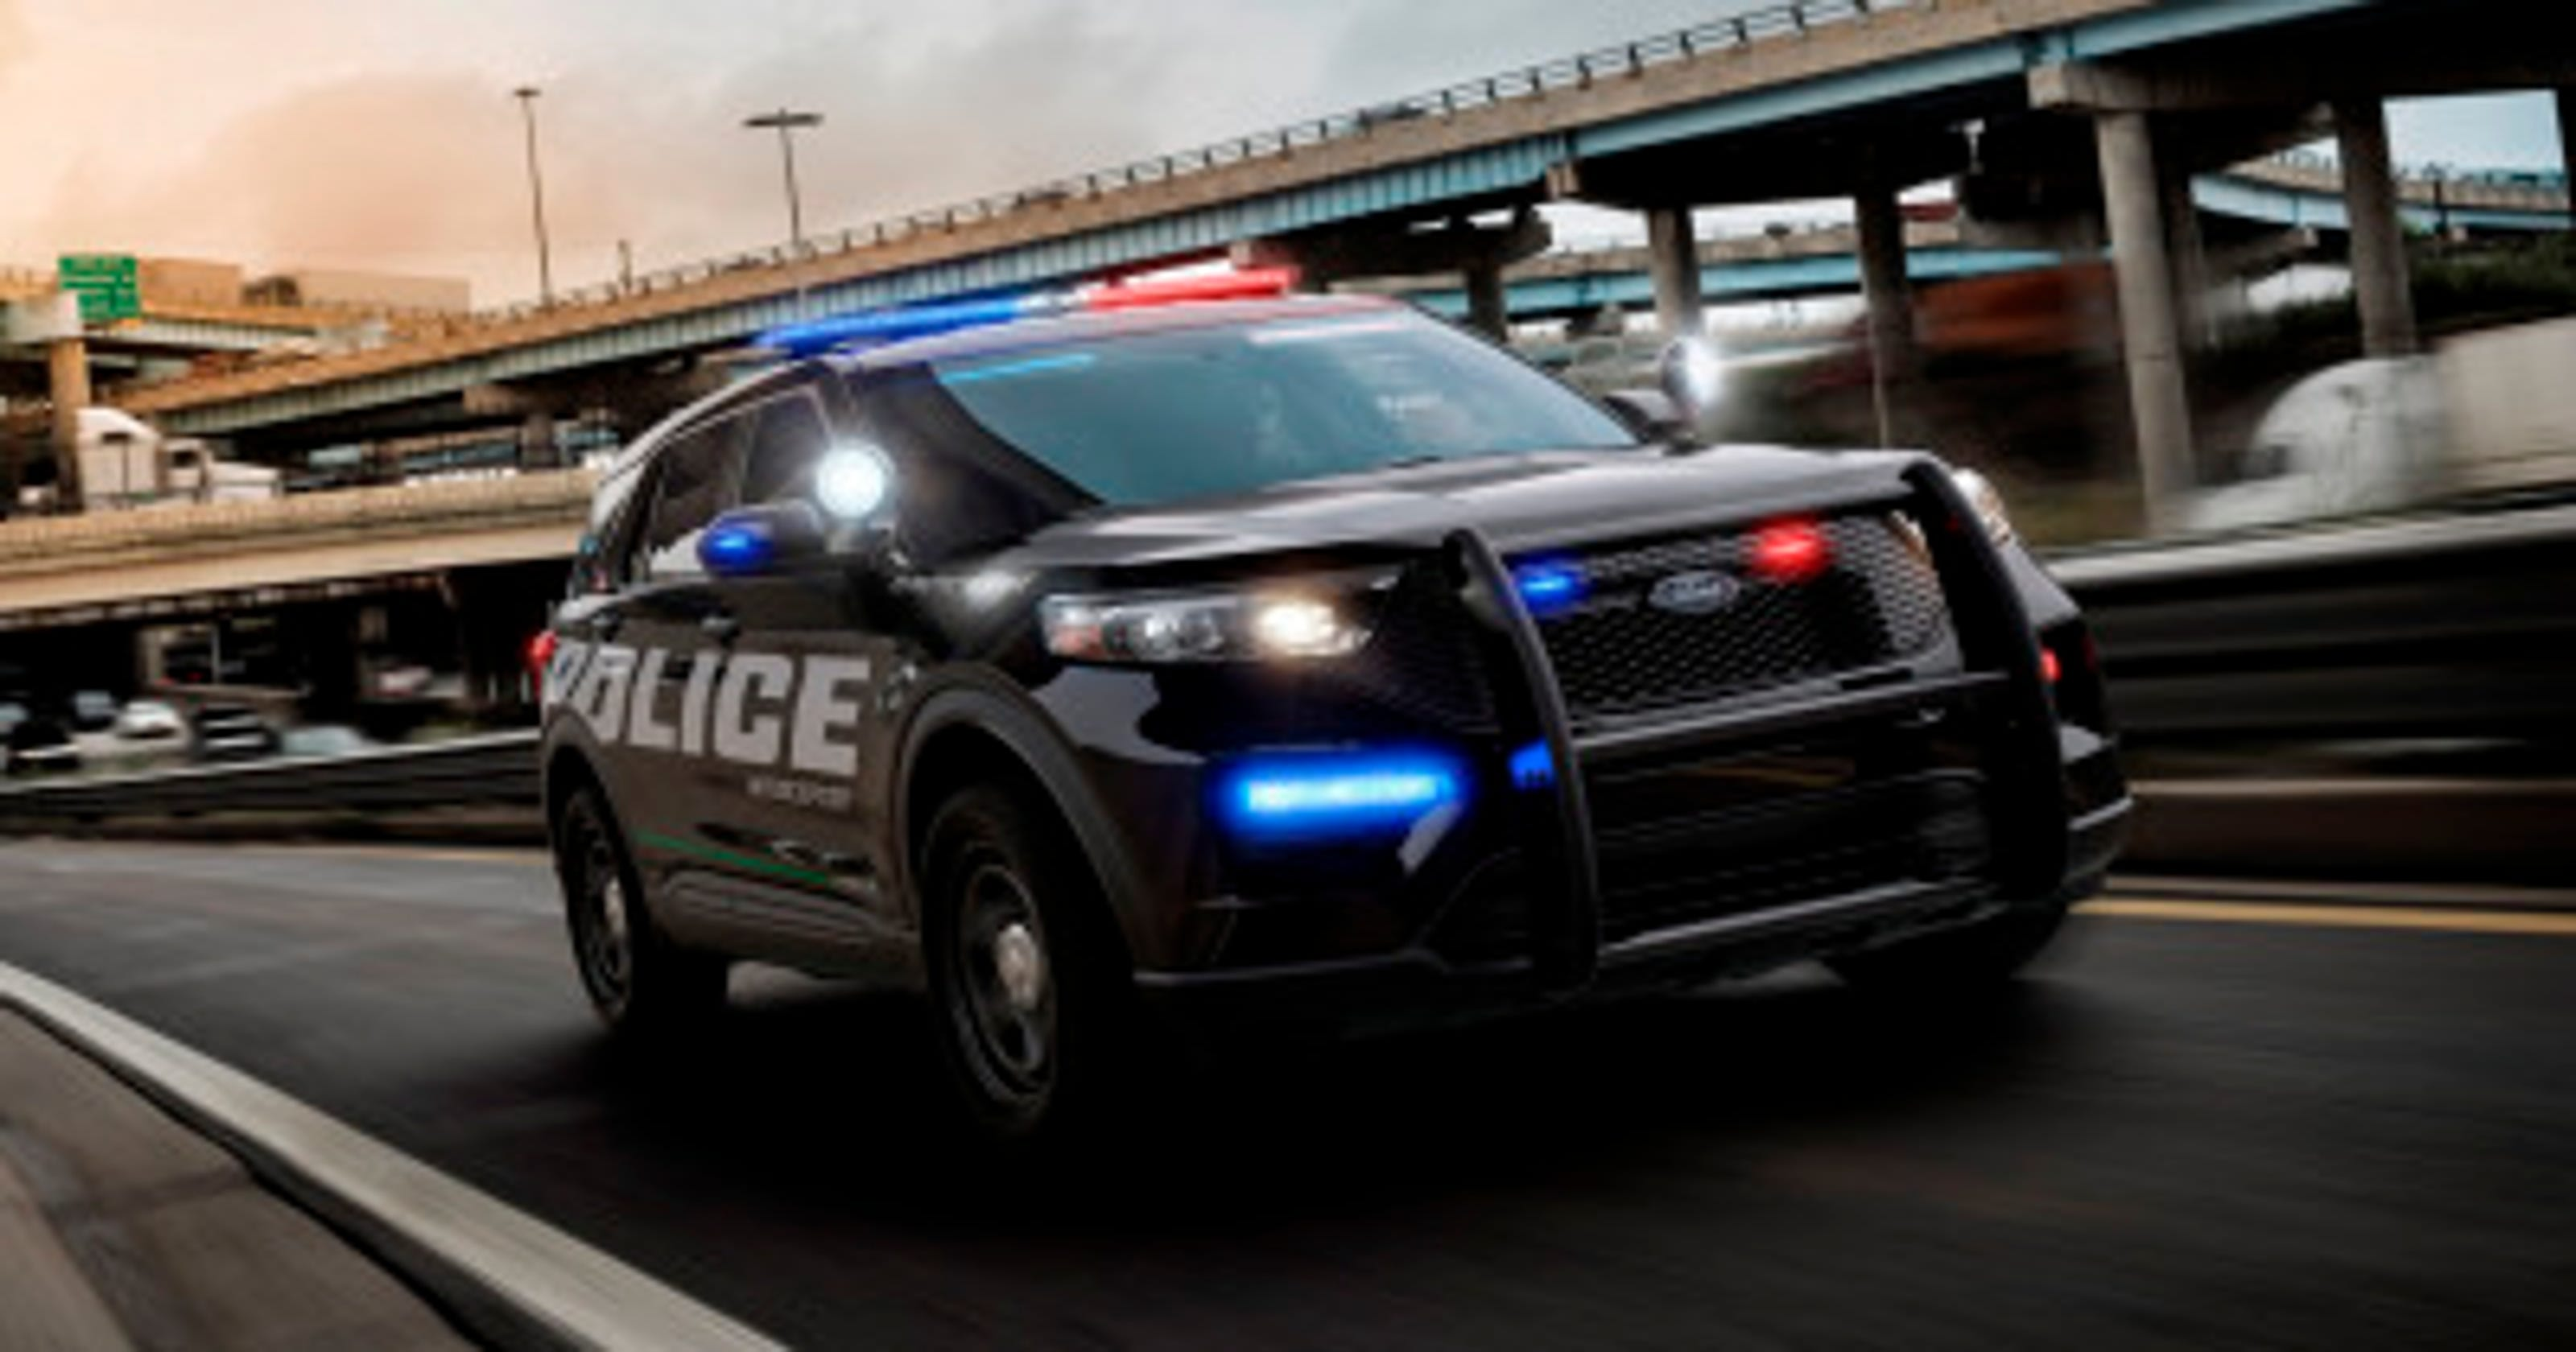 10 reasons why a police car is better than your car